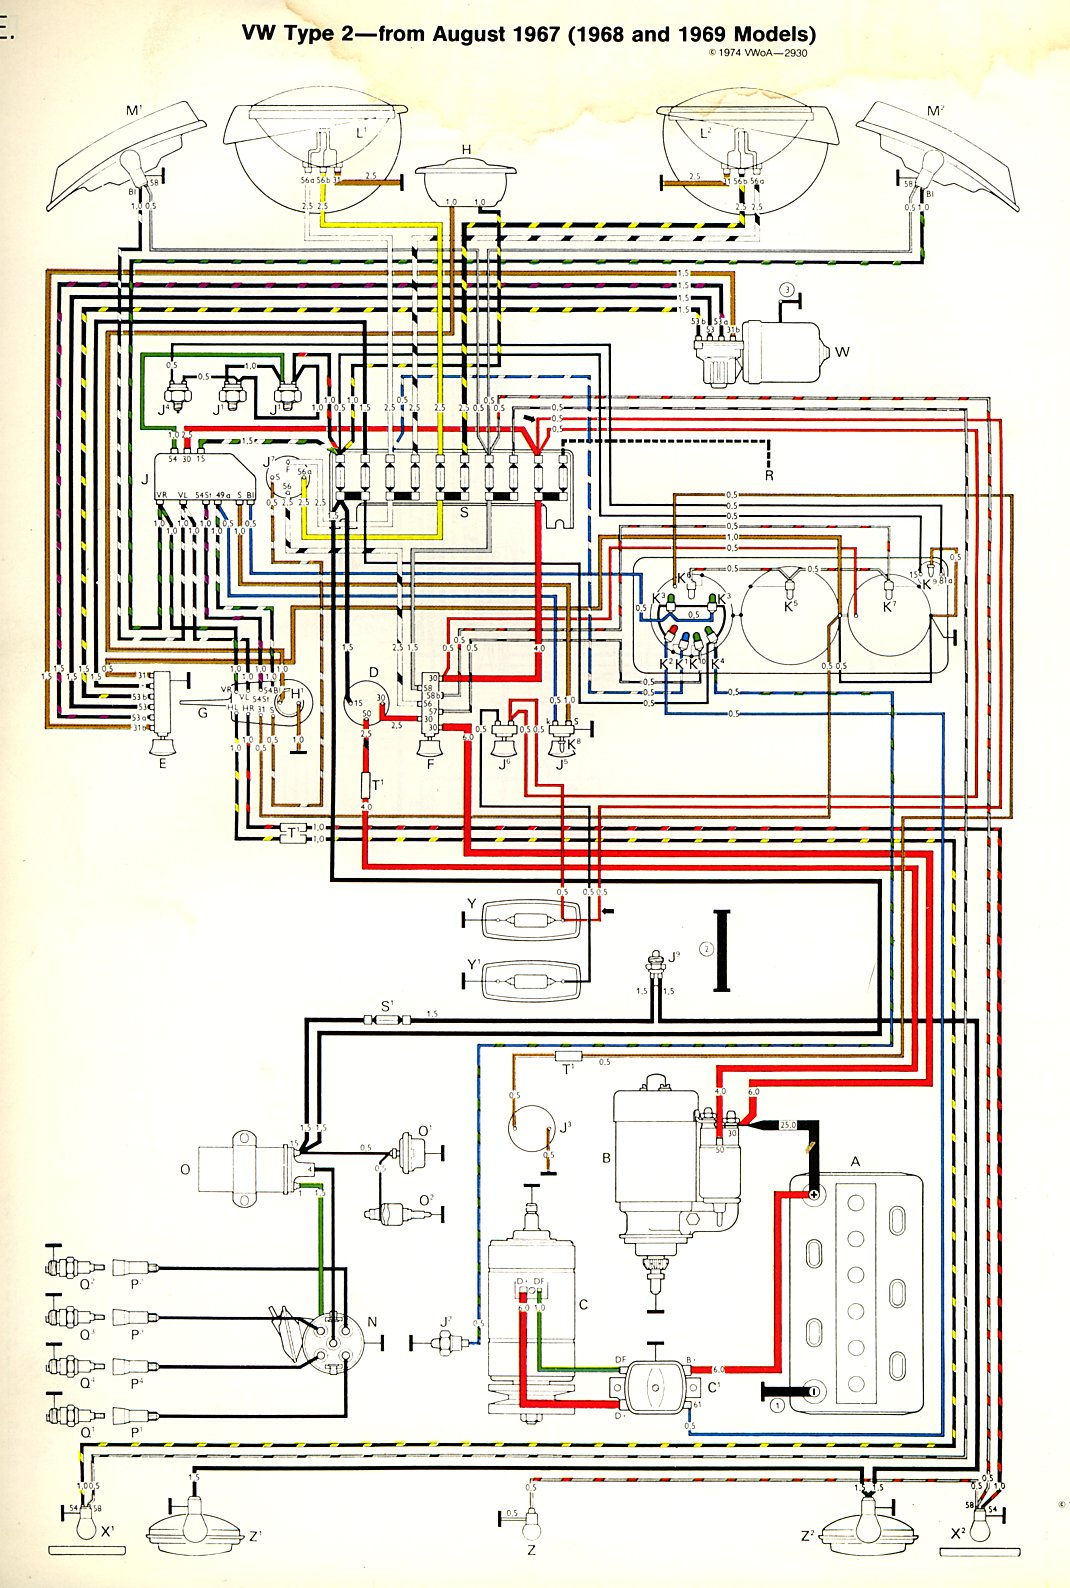 TheSamba.com :: Type 2 Wiring Diagrams on